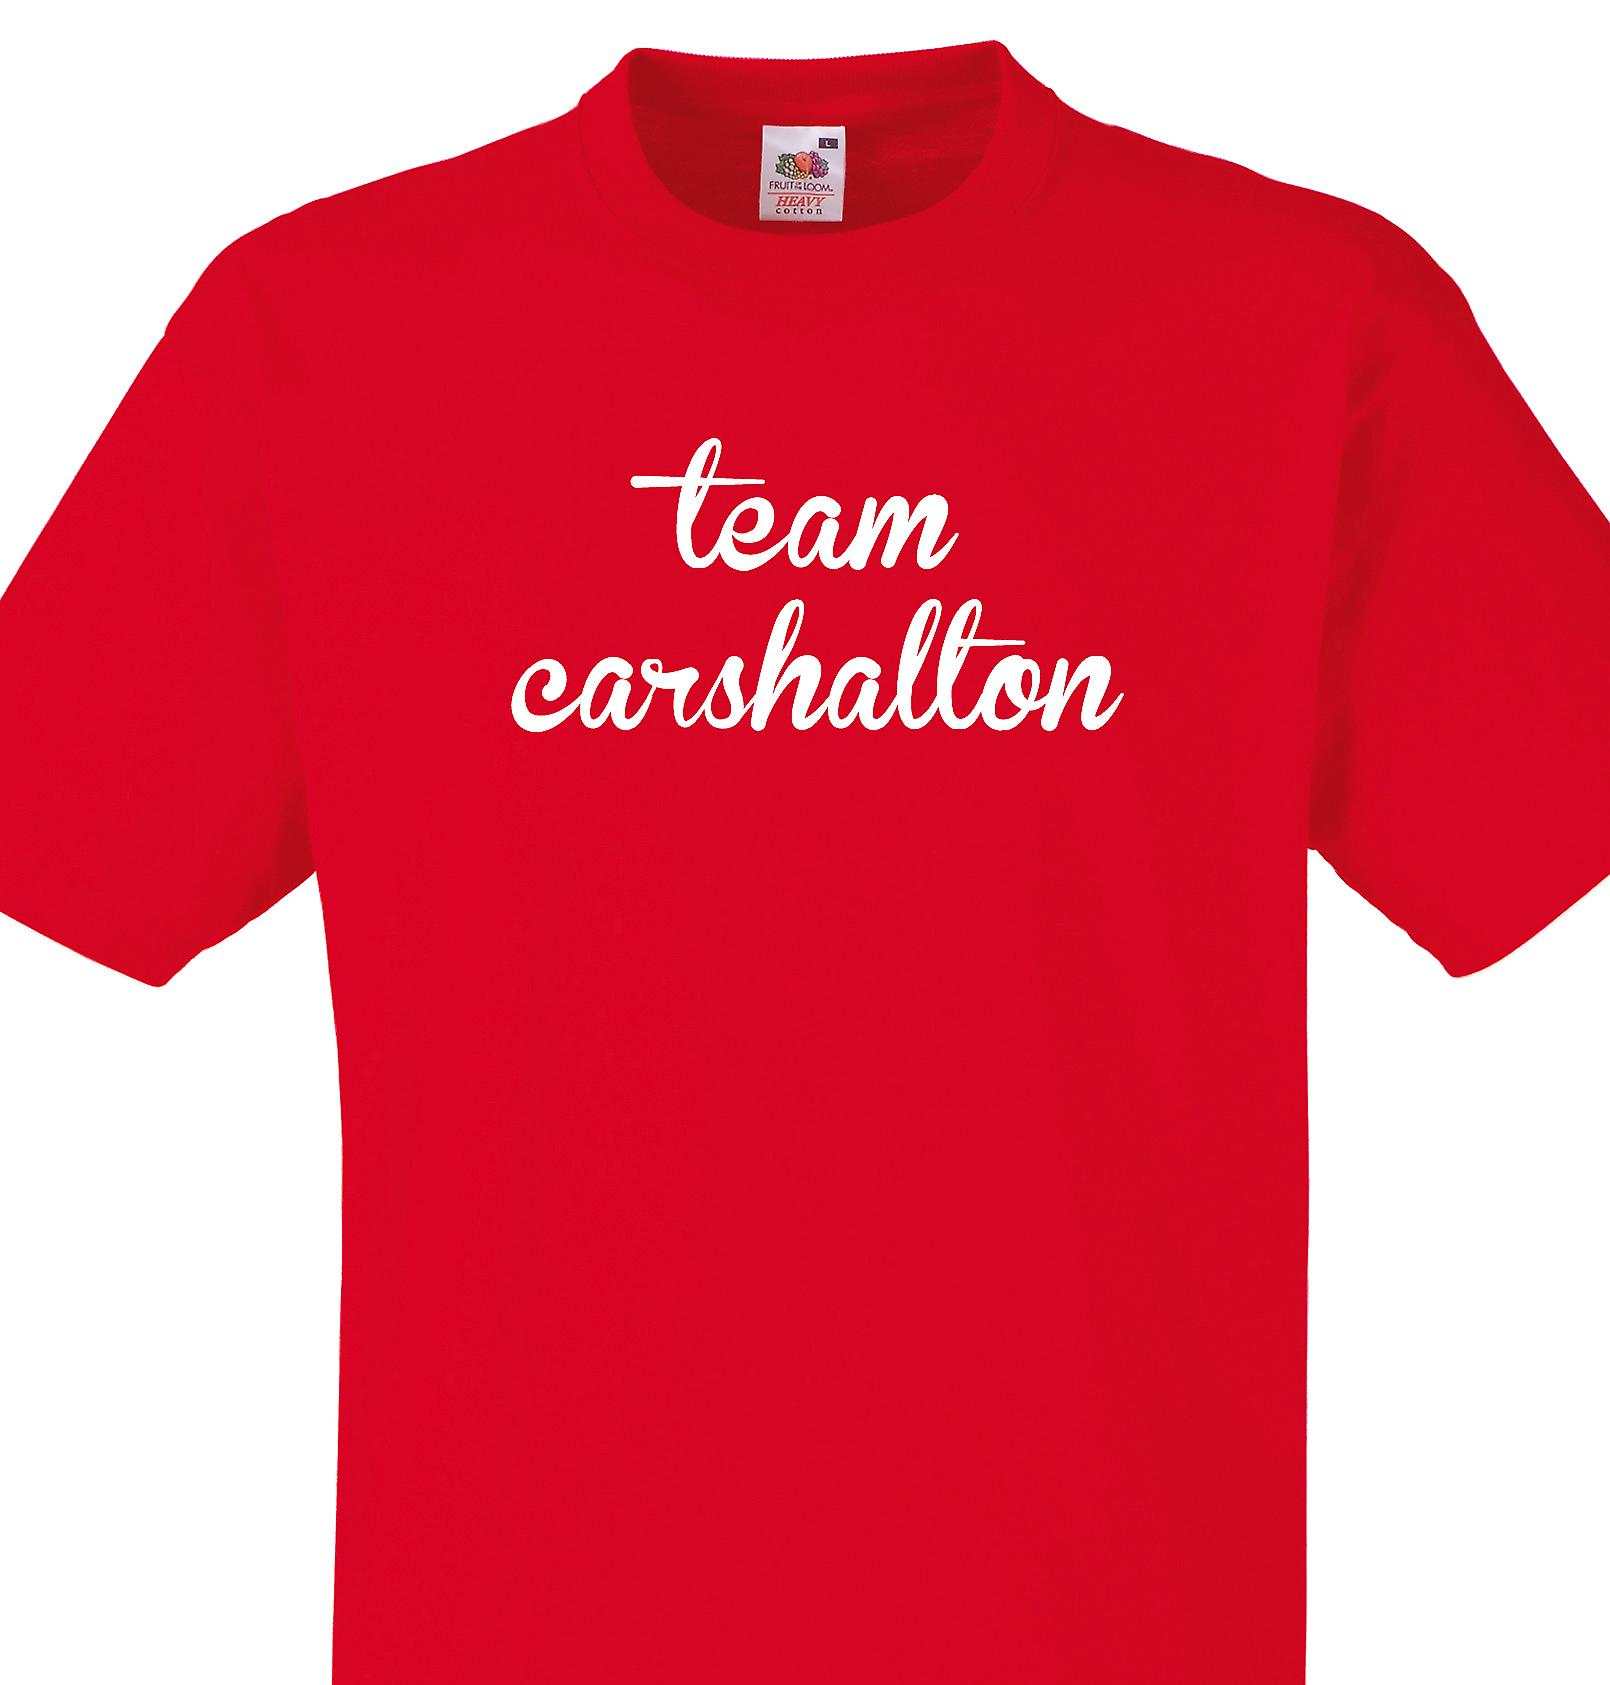 Team Carshalton Red T shirt